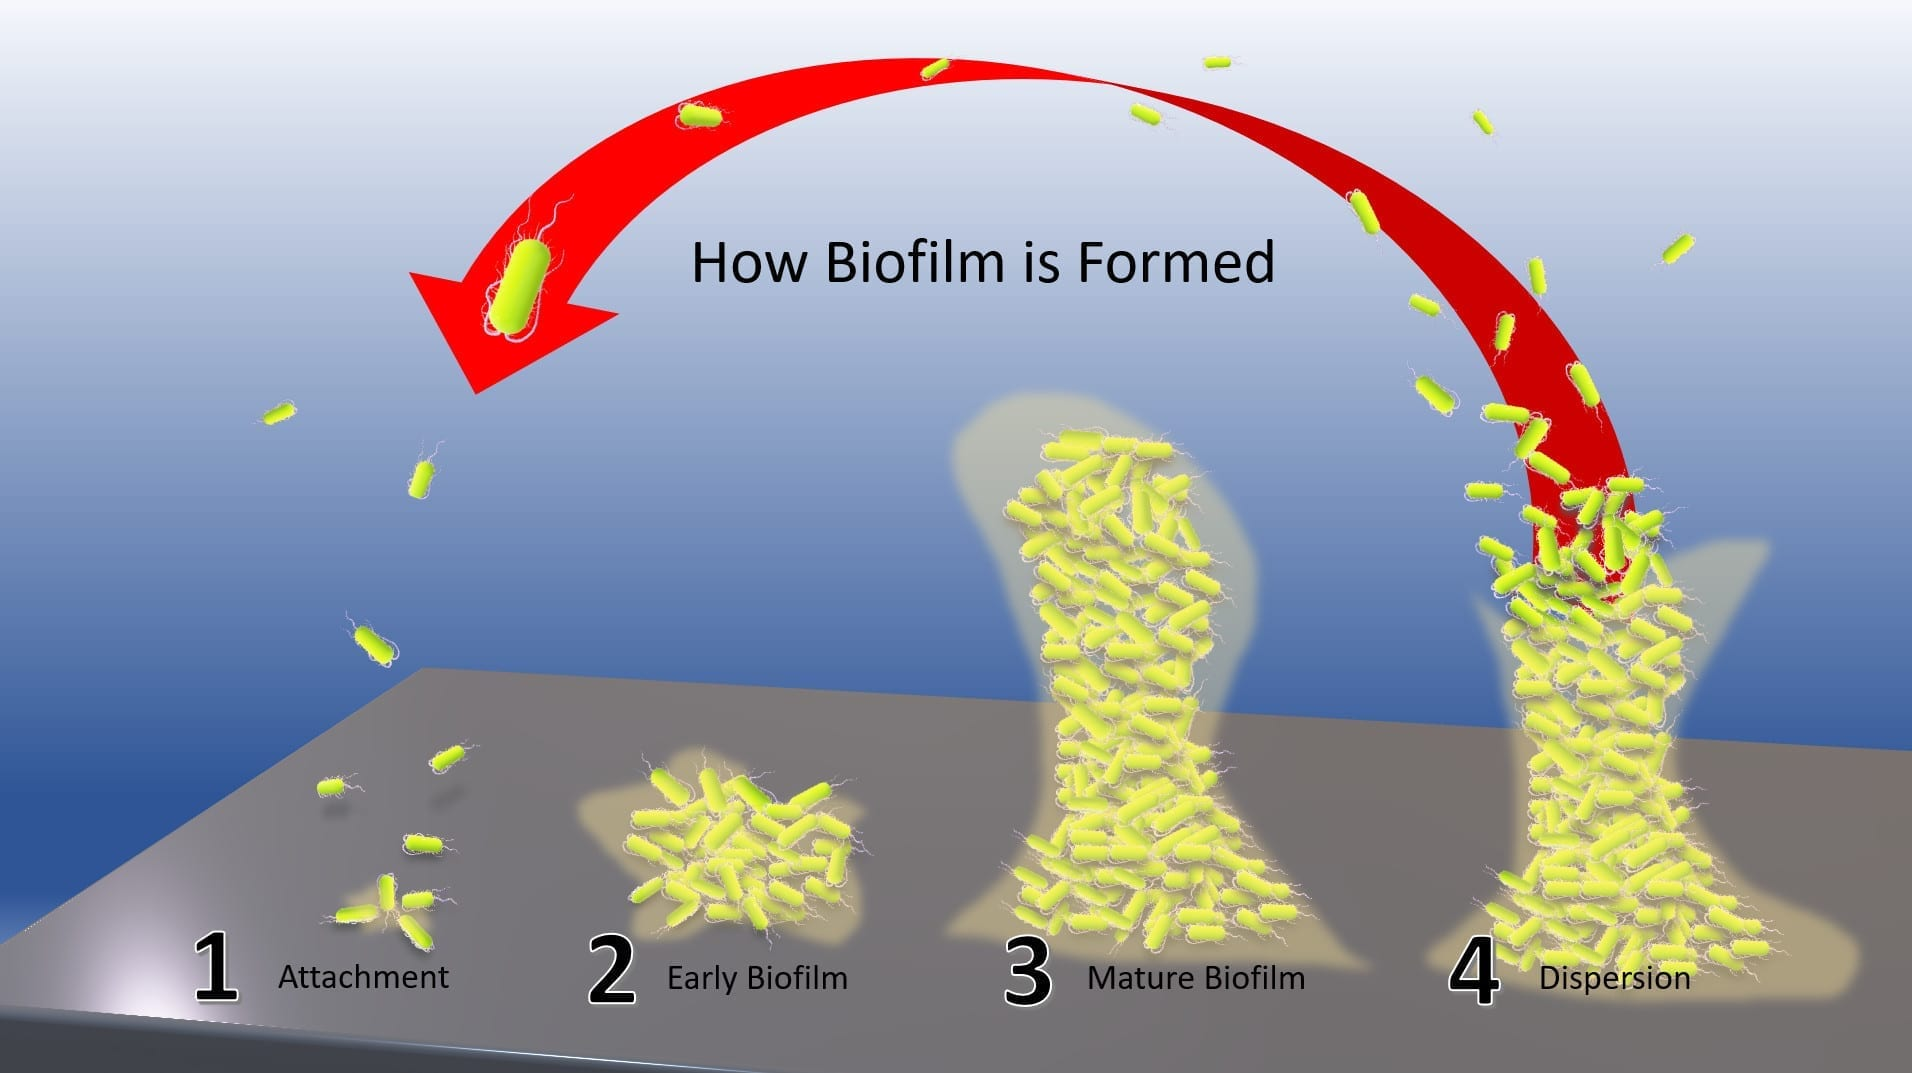 How Biofilm is Formed